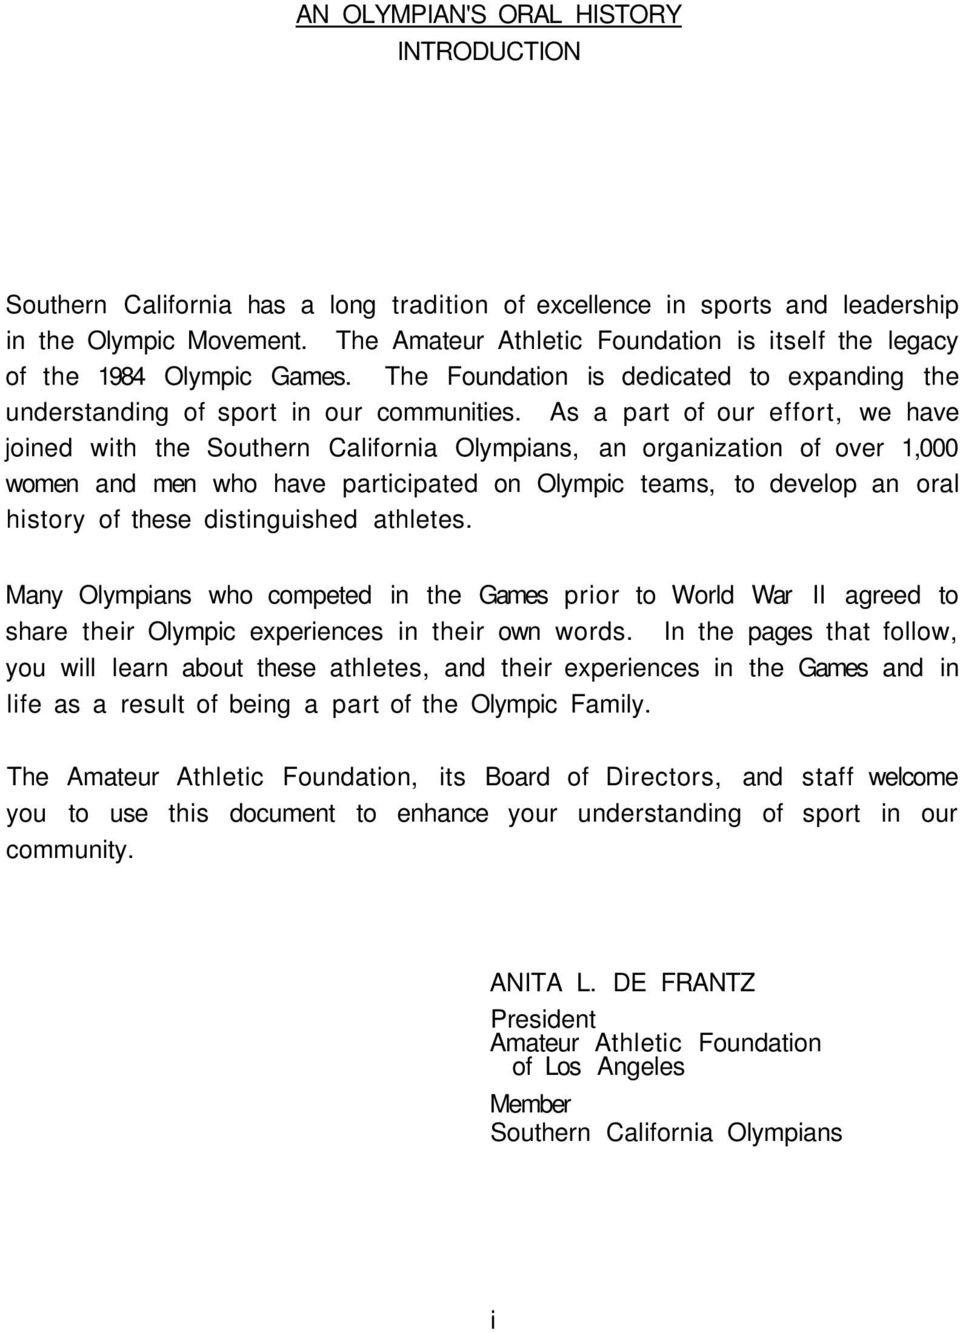 As a part of our effort, we have joined with the Southern California Olympians, an organization of over 1,000 women and men who have participated on Olympic teams, to develop an oral history of these